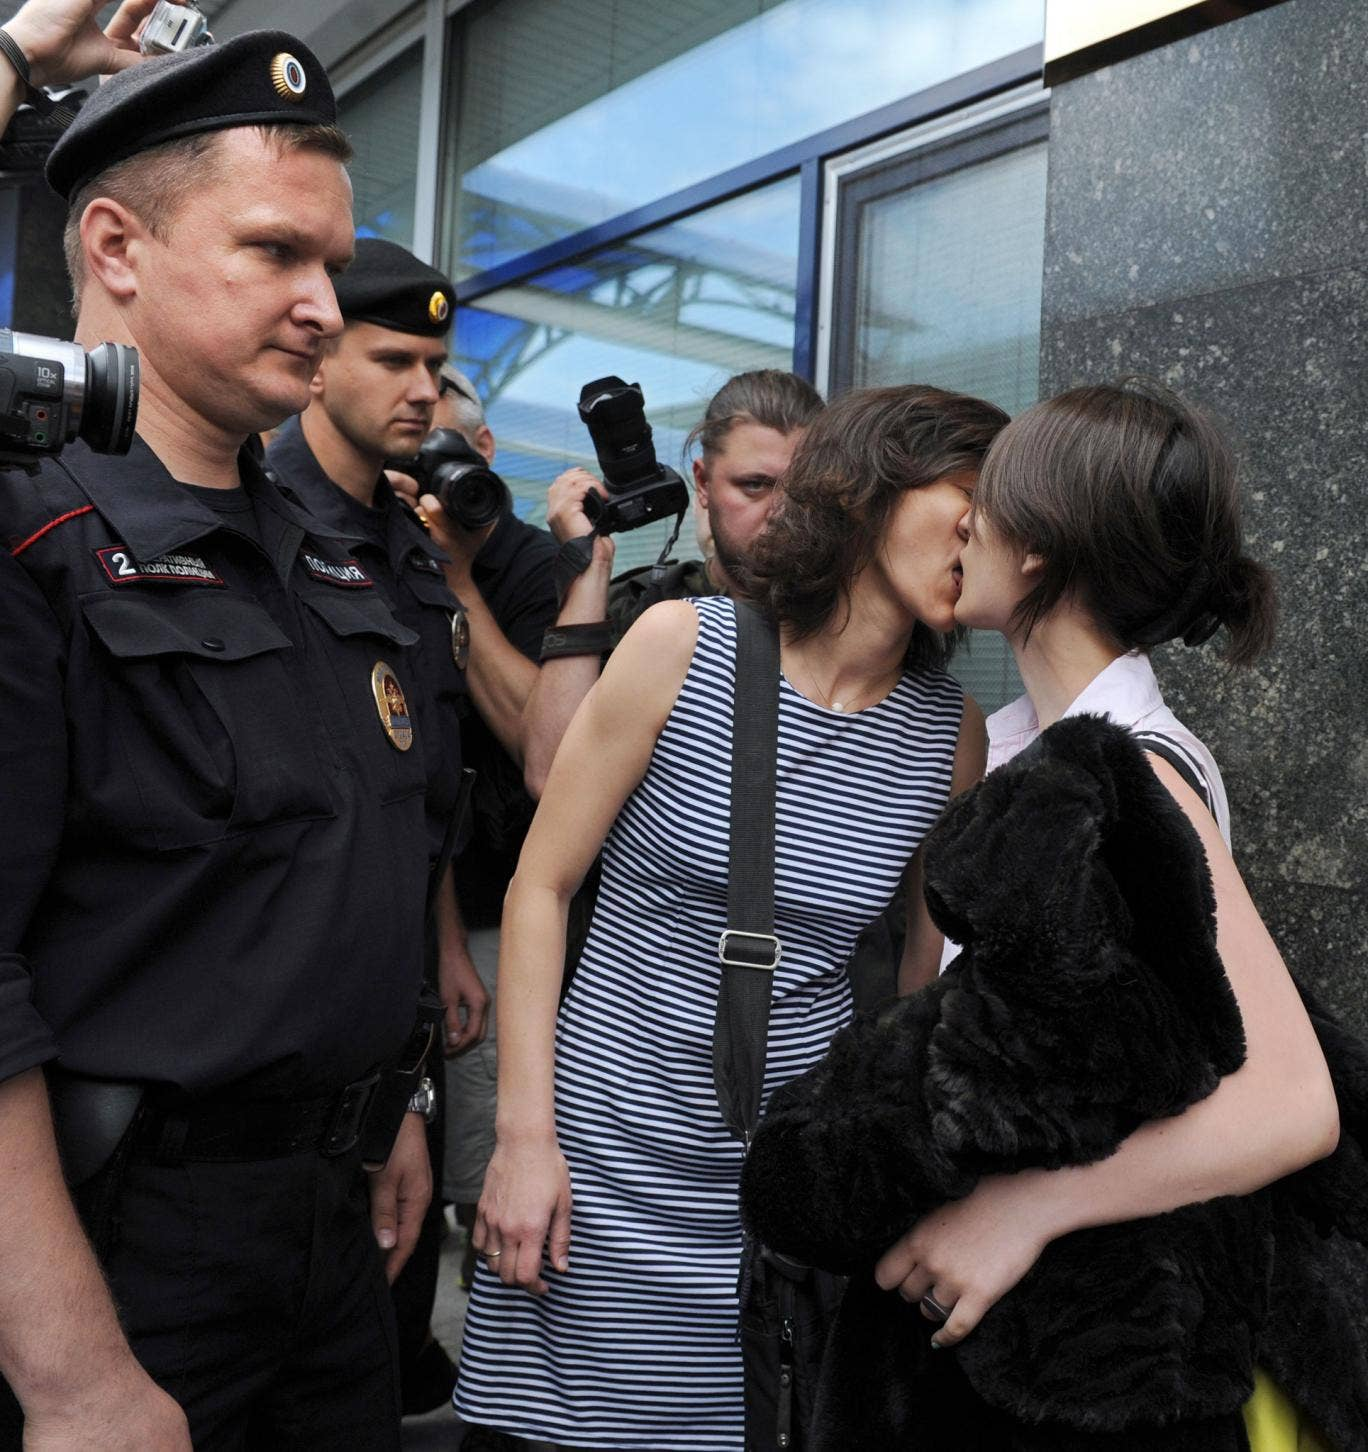 Sexual politics: gay rights activists kissing outside the lower house of Russia's parliament, the State Duma, in Moscow, in 2013